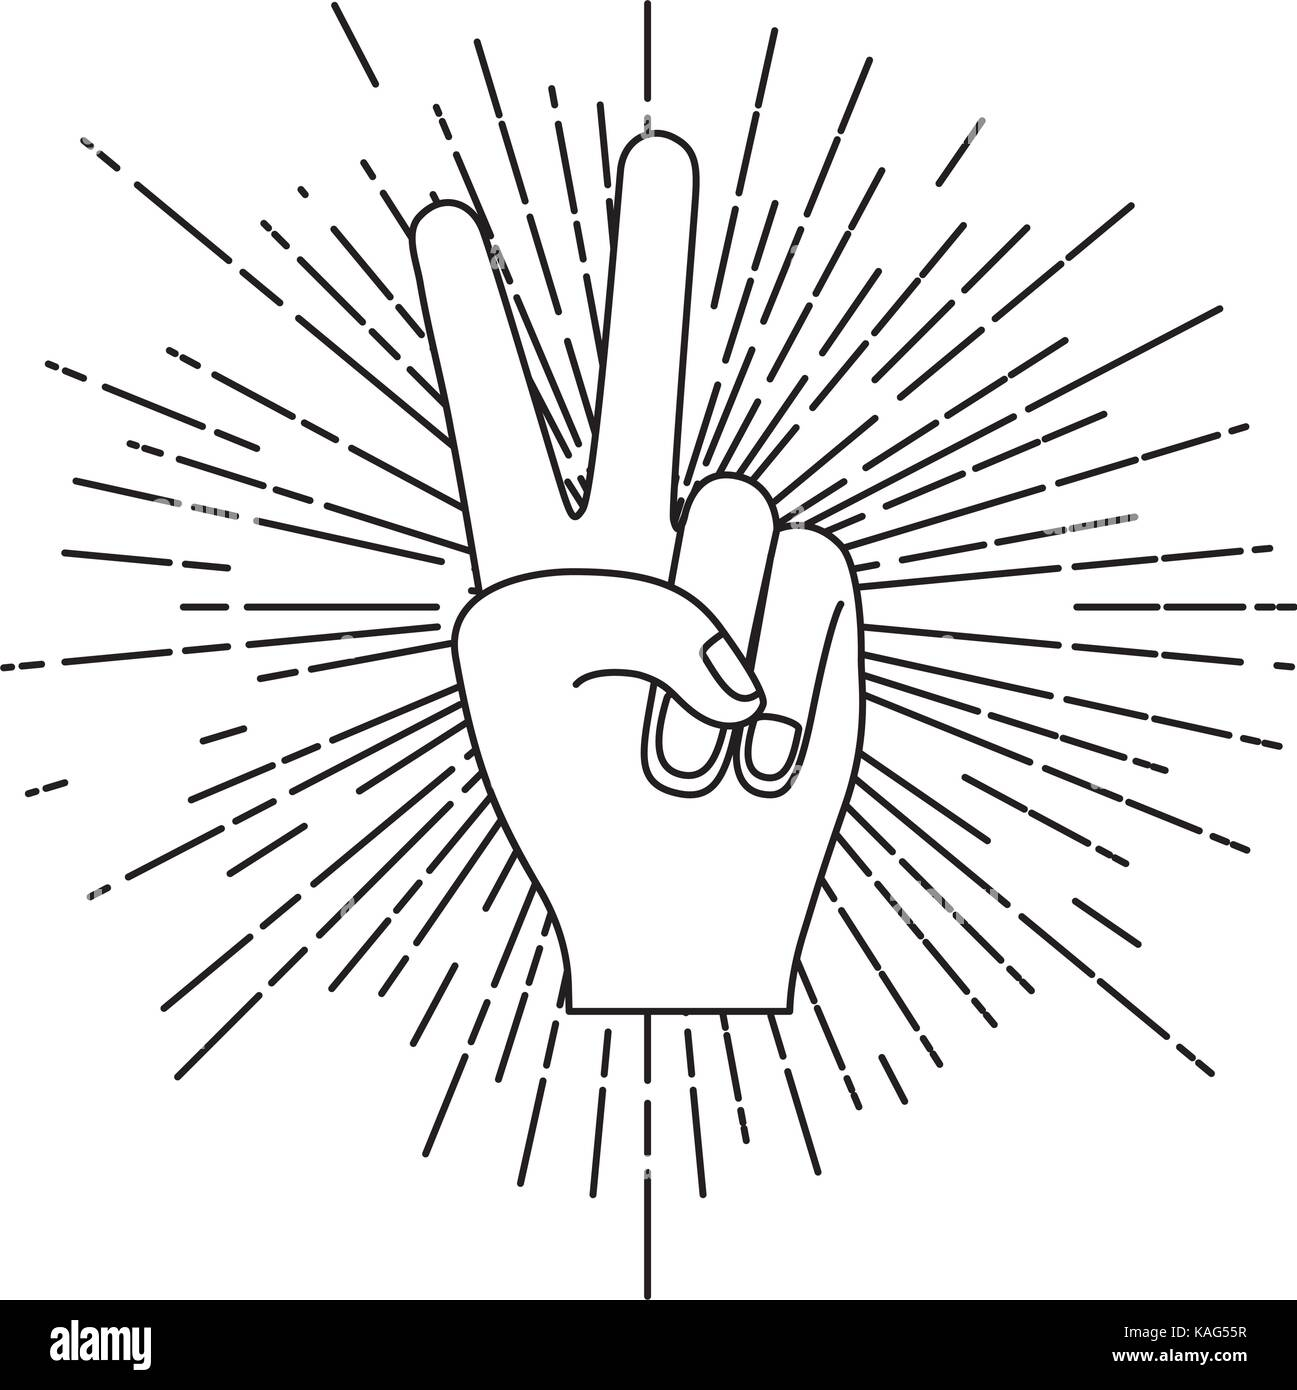 peace hand gesture with linear brightness silhouette in white background - Stock Image